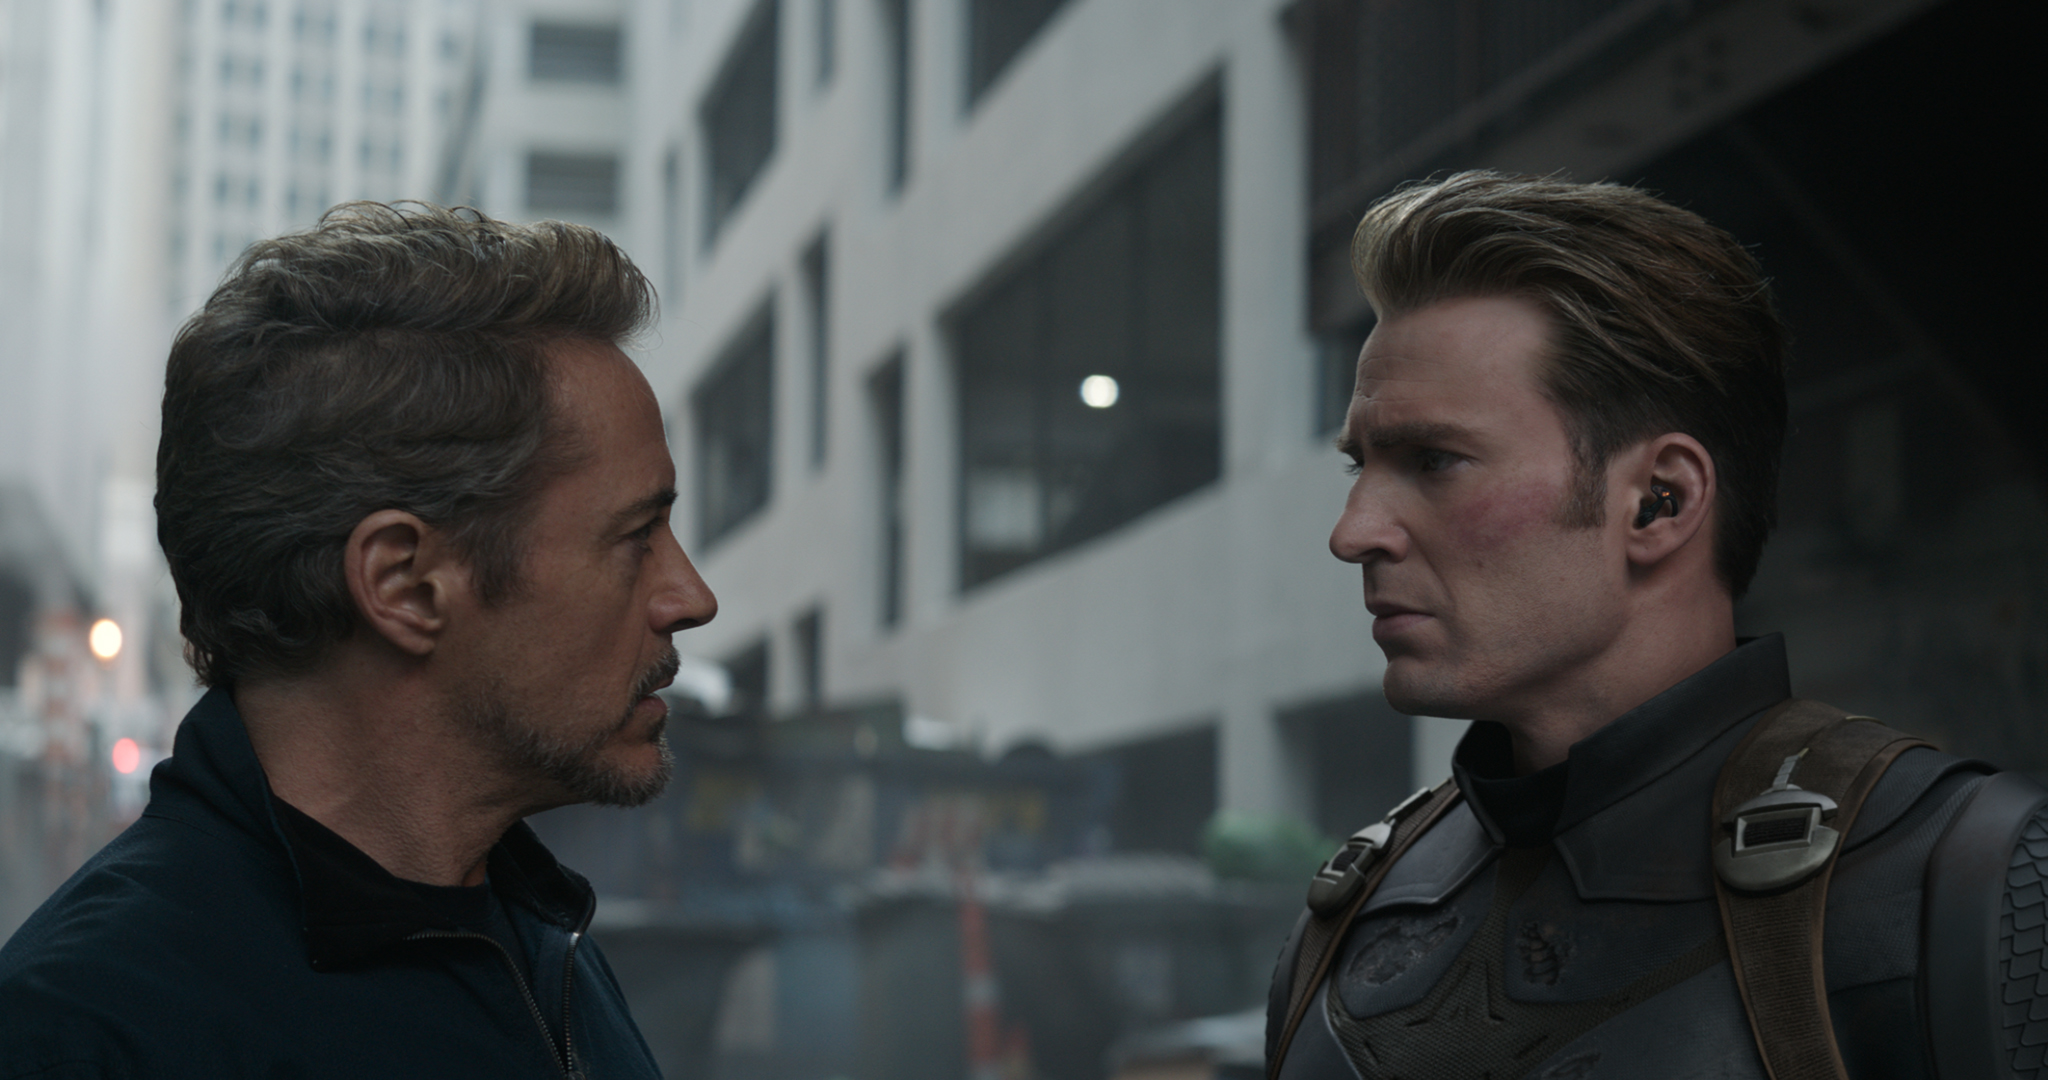 Mtv Movie Tv Awards Nominations 2019 Got Avengers Endgame Lead Deadline